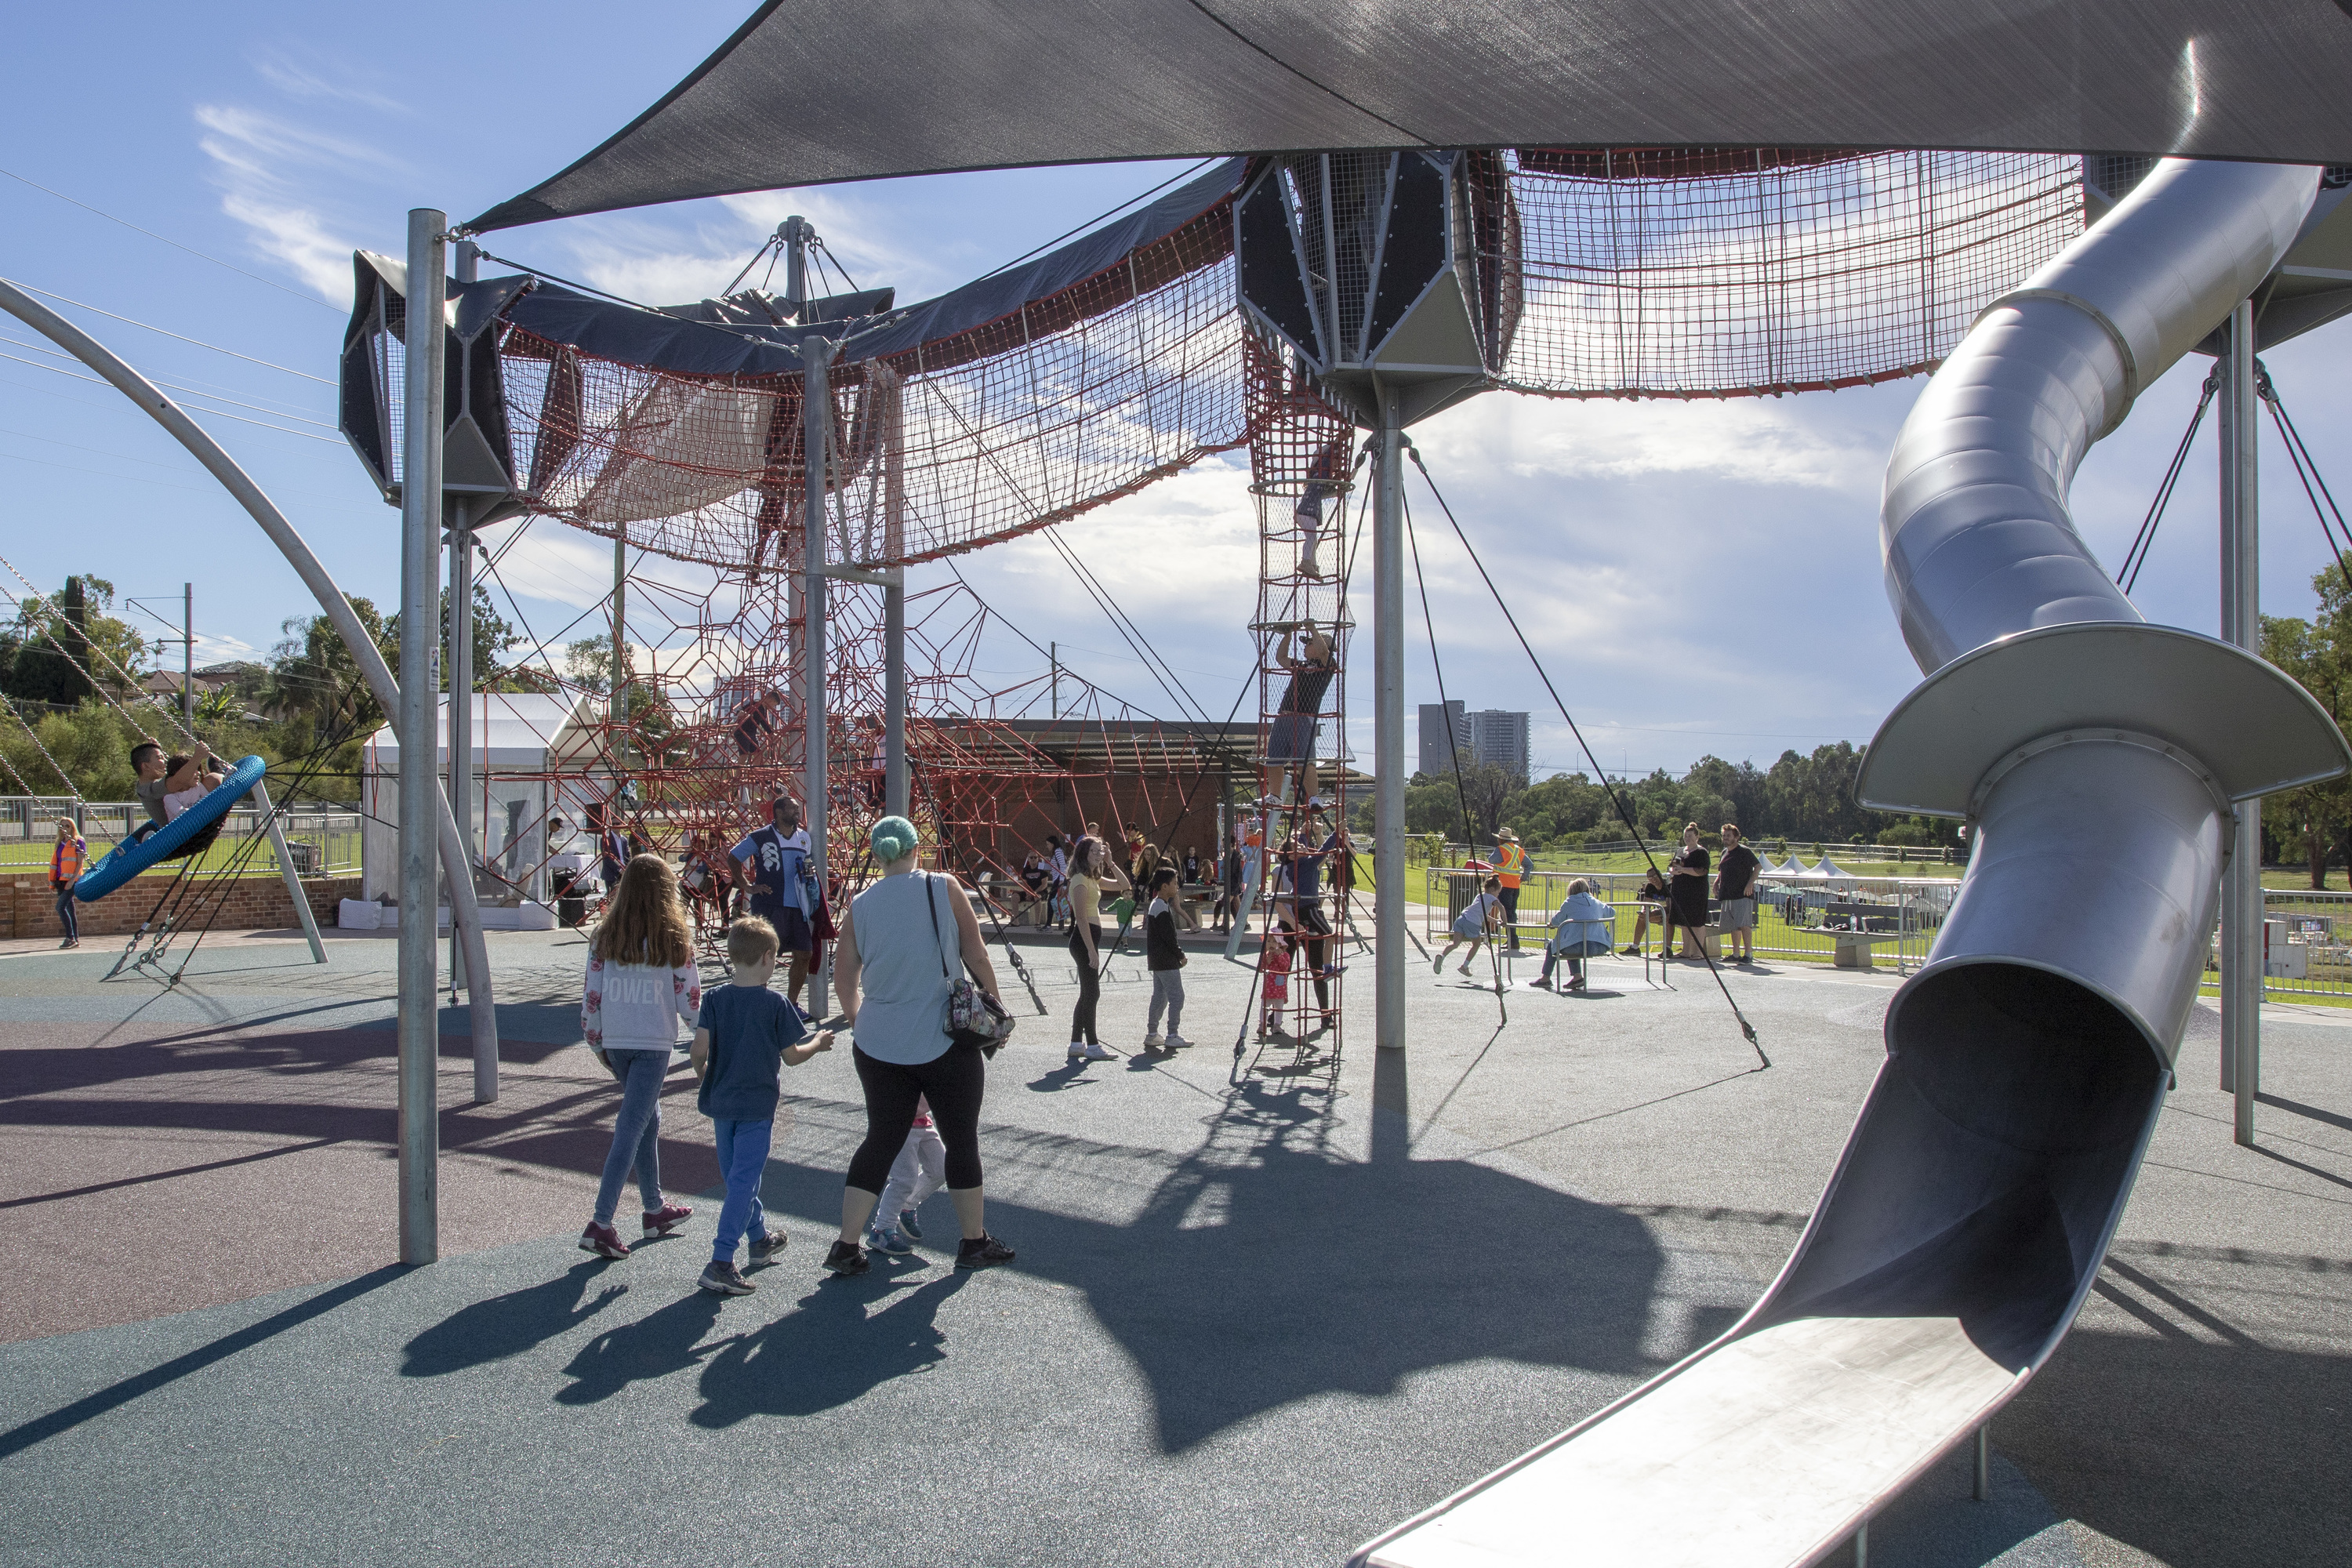 Children and adults at Casula Playground with slide, ropes and climbing net